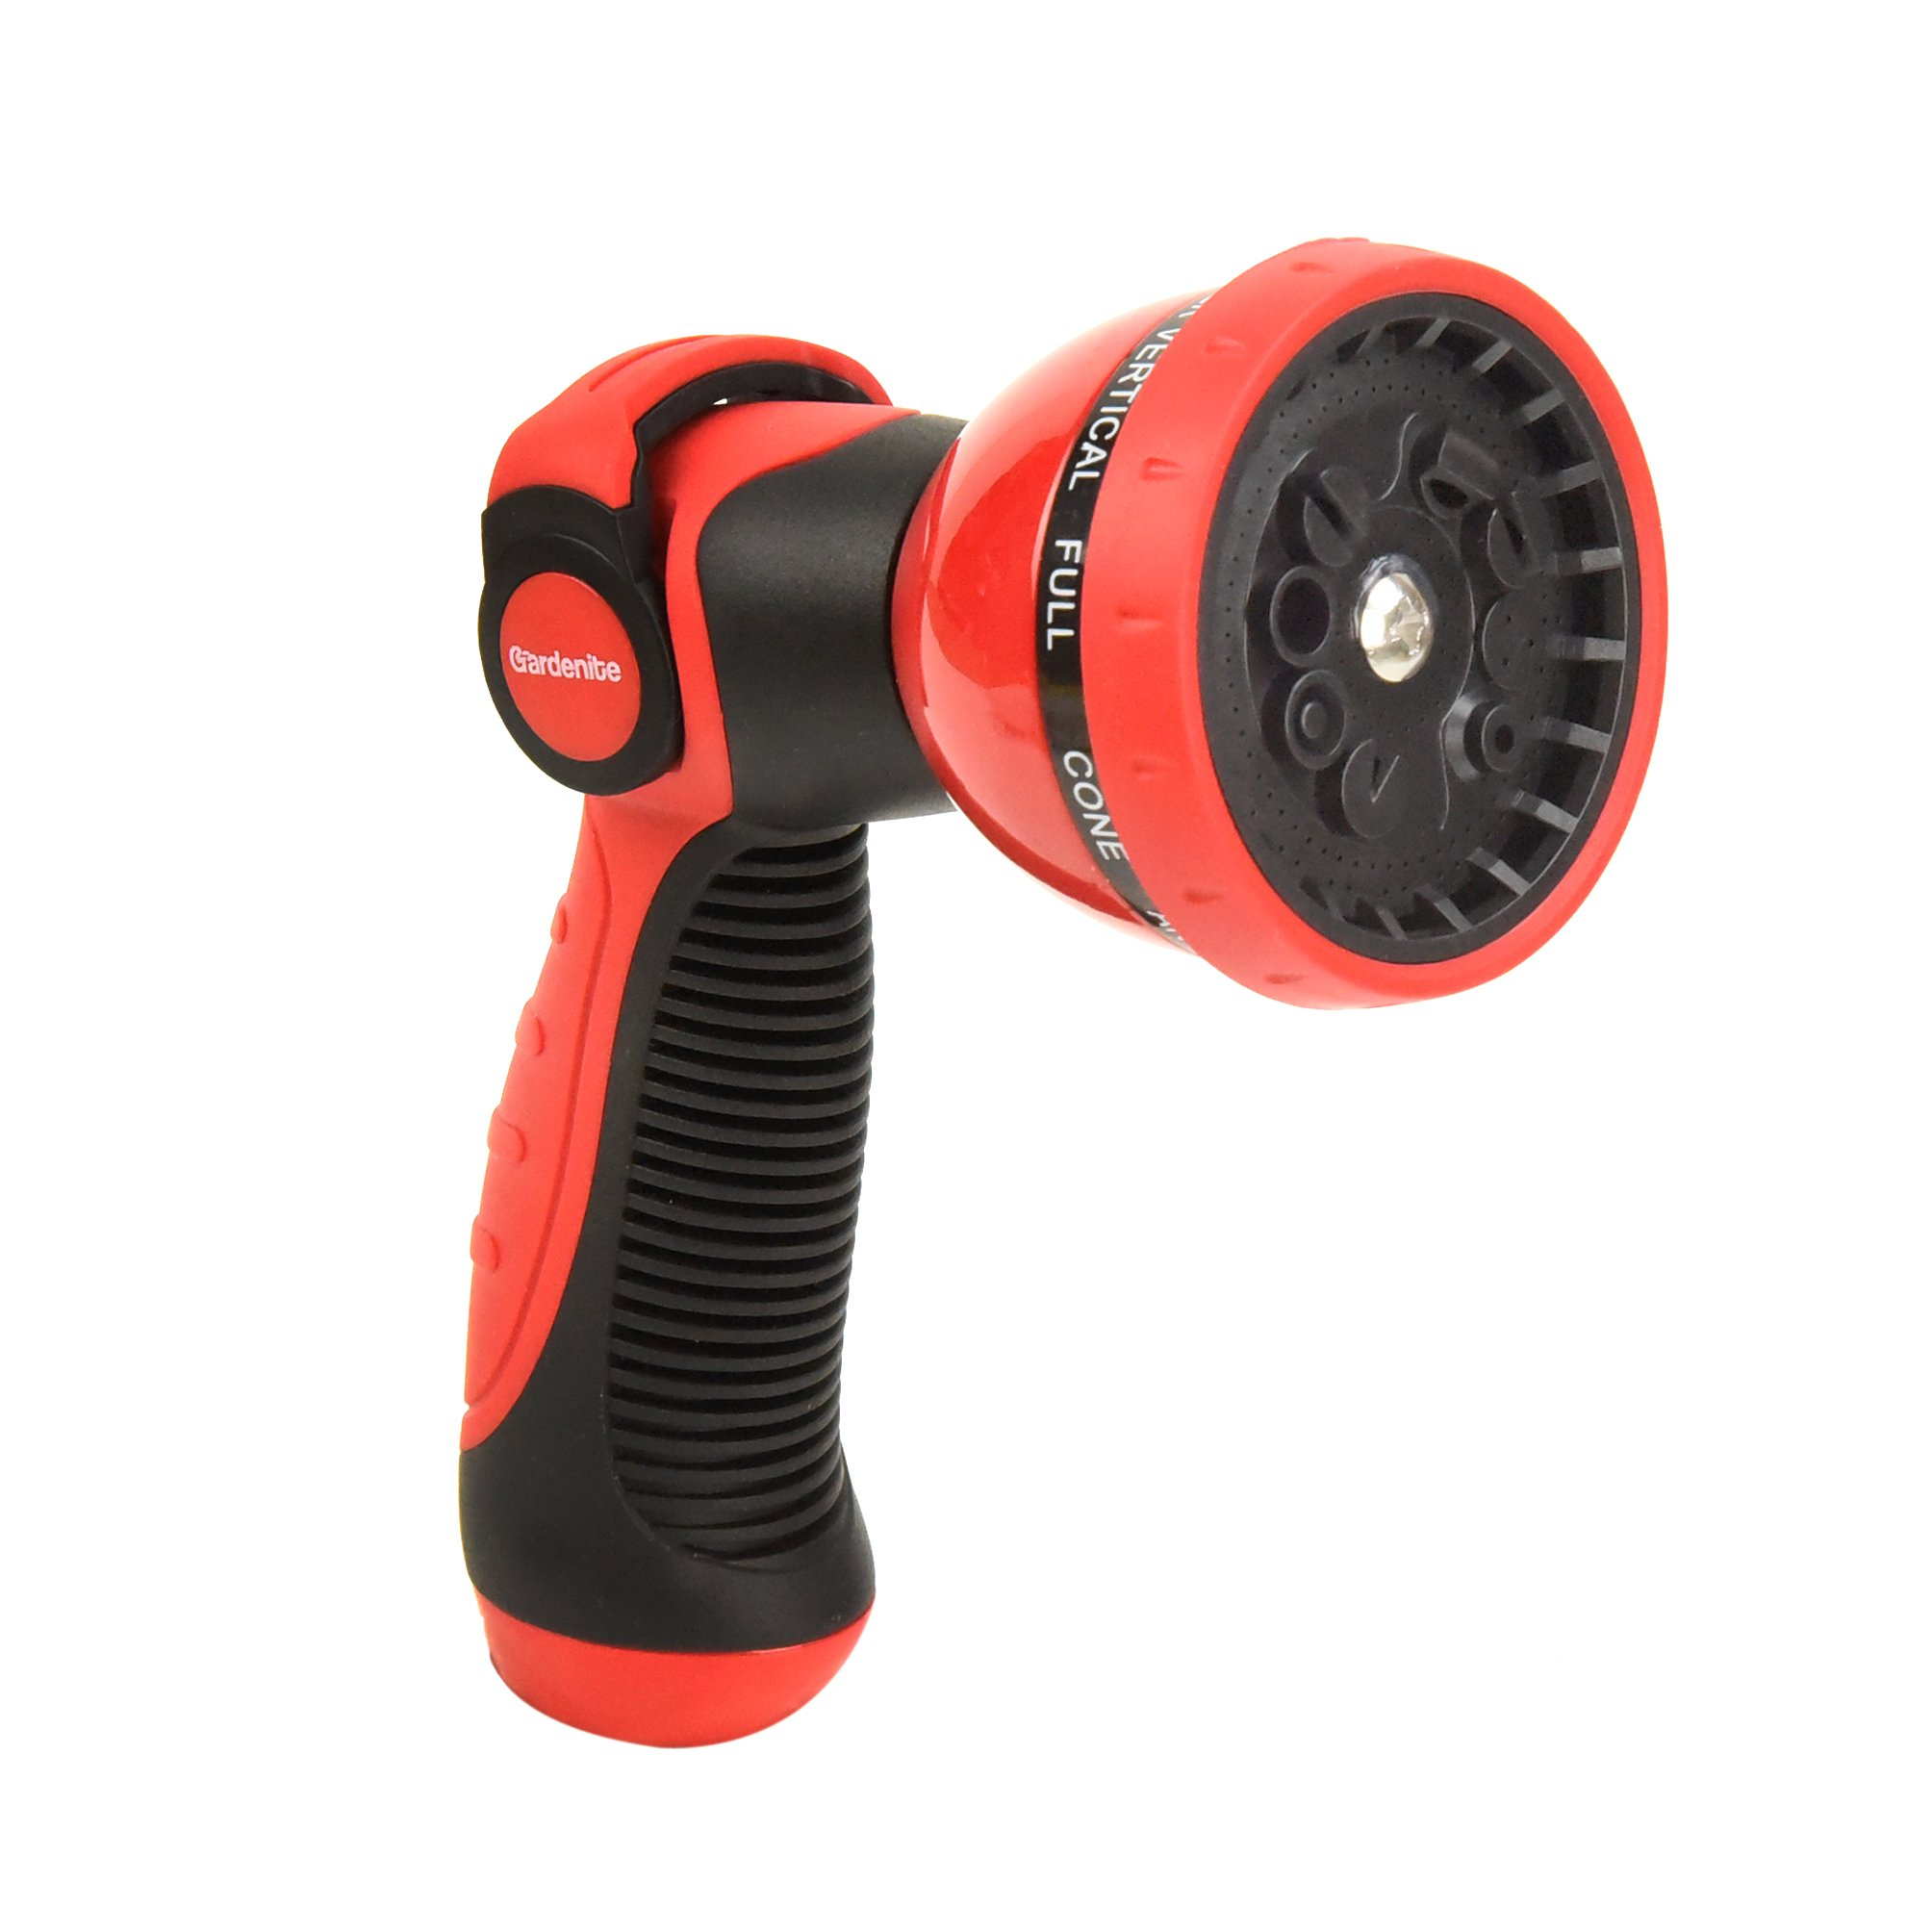 Heavy Duty 10 Pattern Garden Hose Nozzle Hand Sprayer - Metal Watering Nozzle - High Pressure | Thumb Switch Flow Control Spray Attachment | Suitable for Car Wash, Cleaning, Watering Lawn and Garden